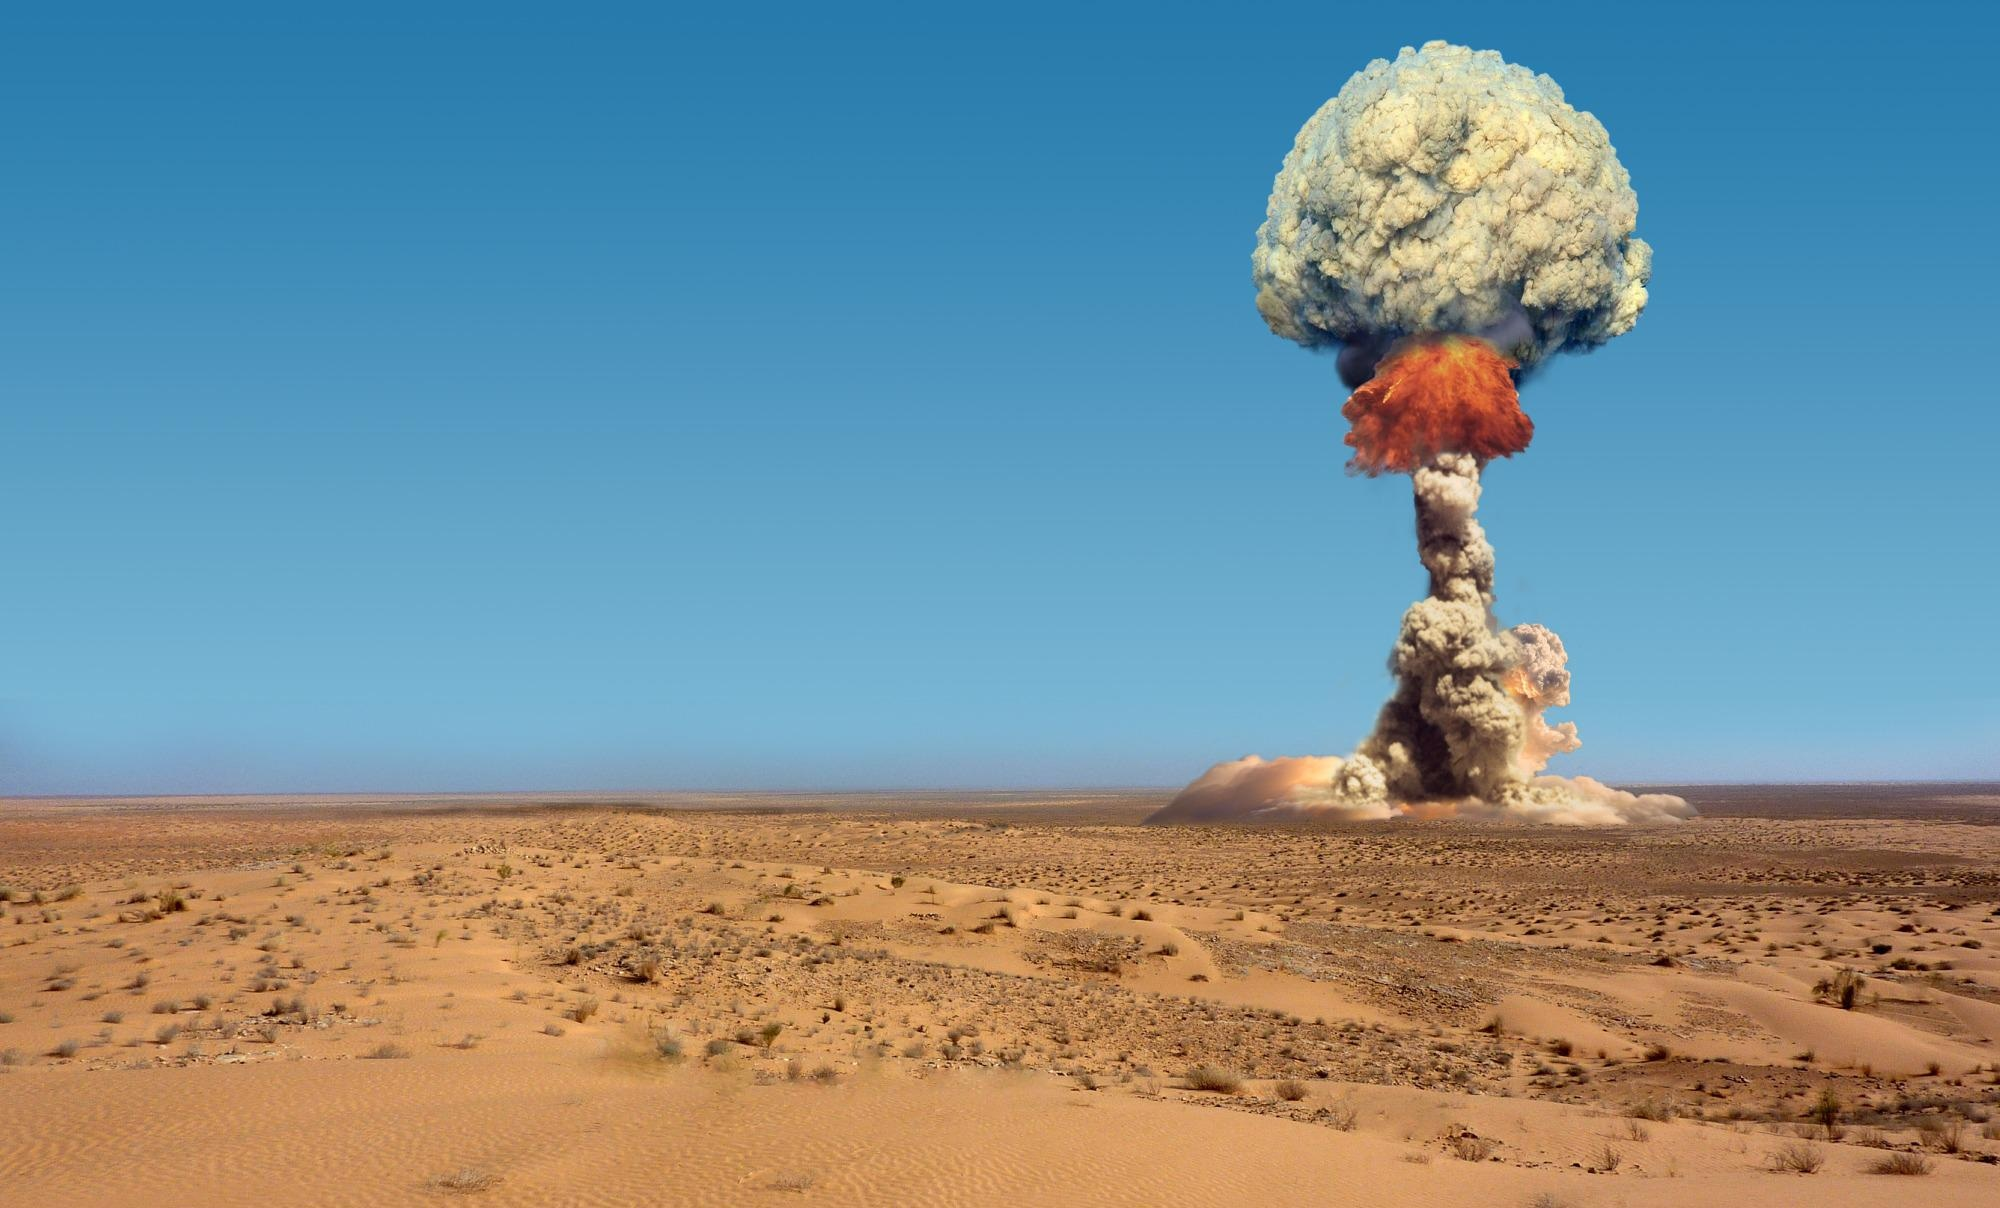 Plutonium Particles Released from Nuclear Testing are More Complex and Varied